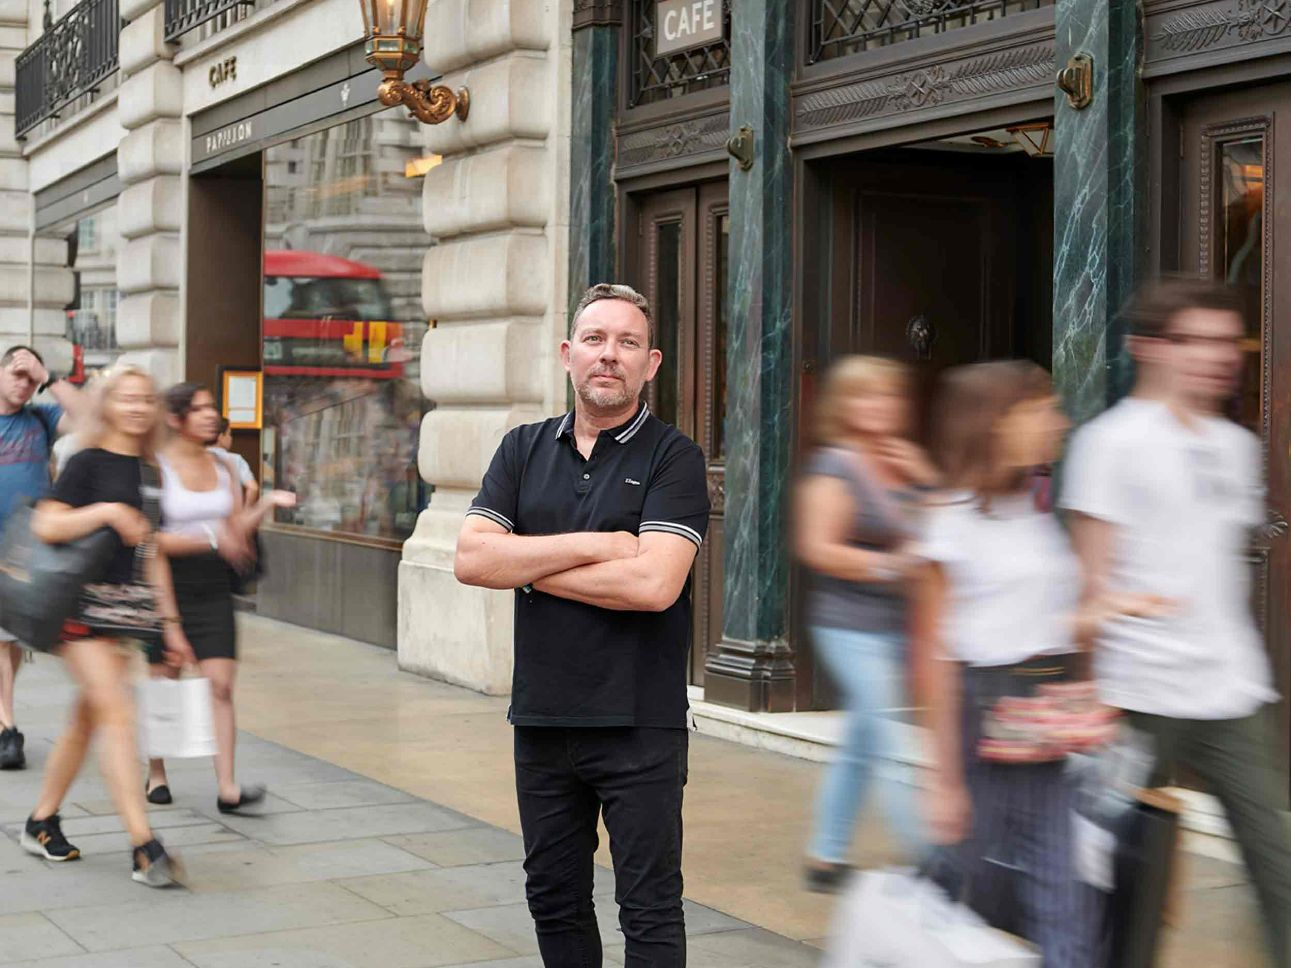 albert adria hotel cafe royal cakes and bubbles london